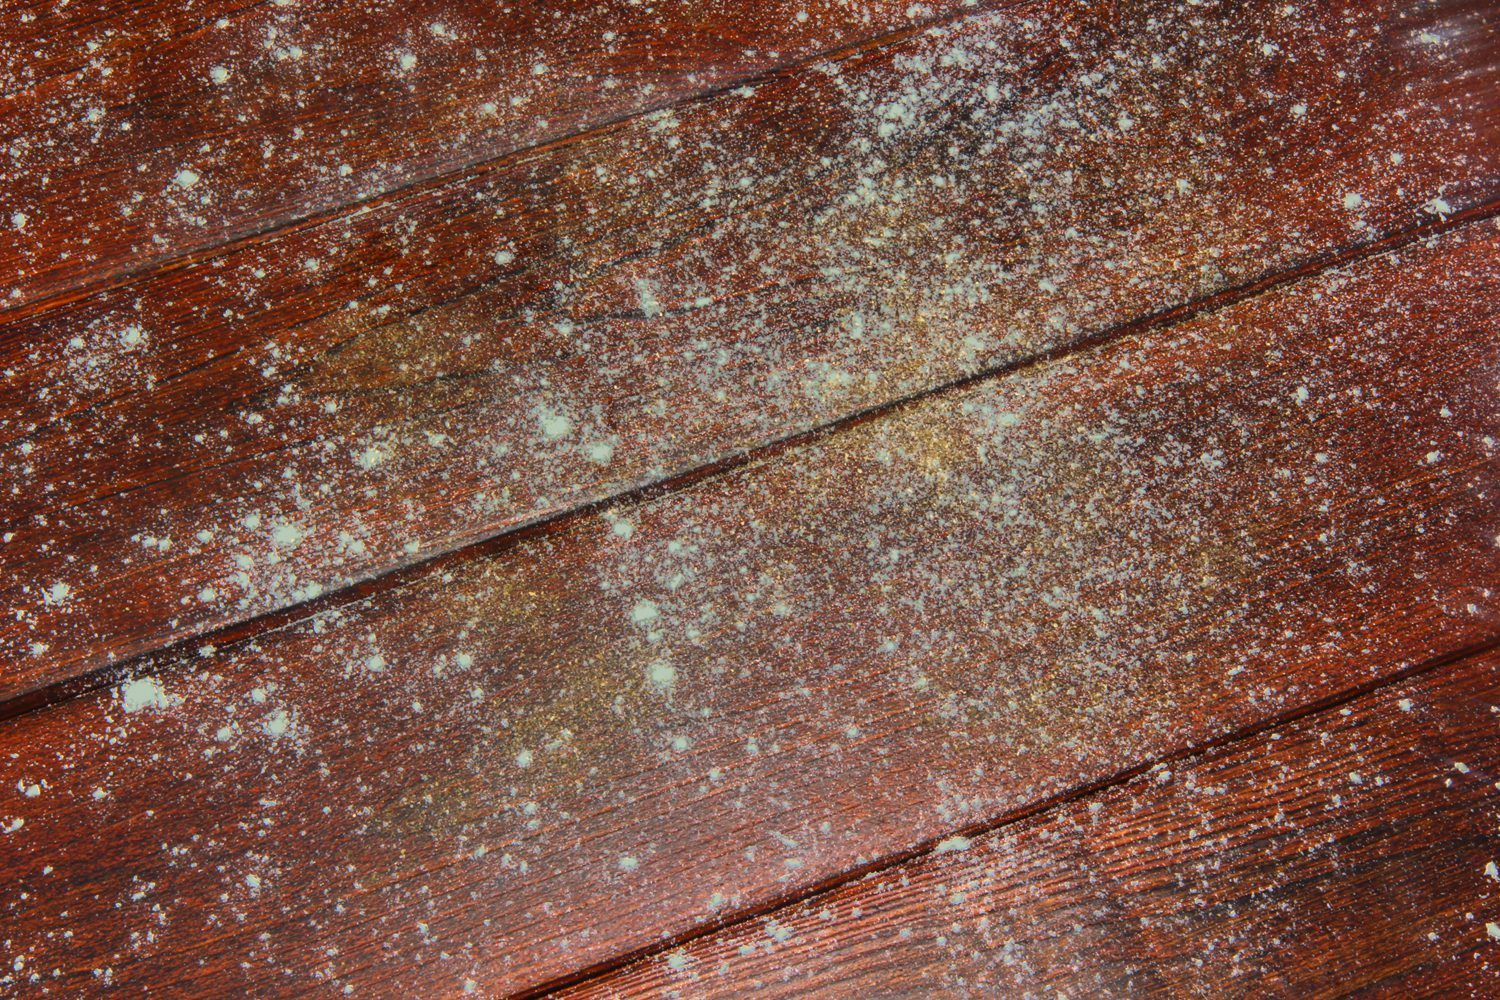 Mold That Grows On Wood Furniture Is There Because Moisture Present And May Be Just One Of Your Problems Fuzzy Mildew Deposits Which Are A Type